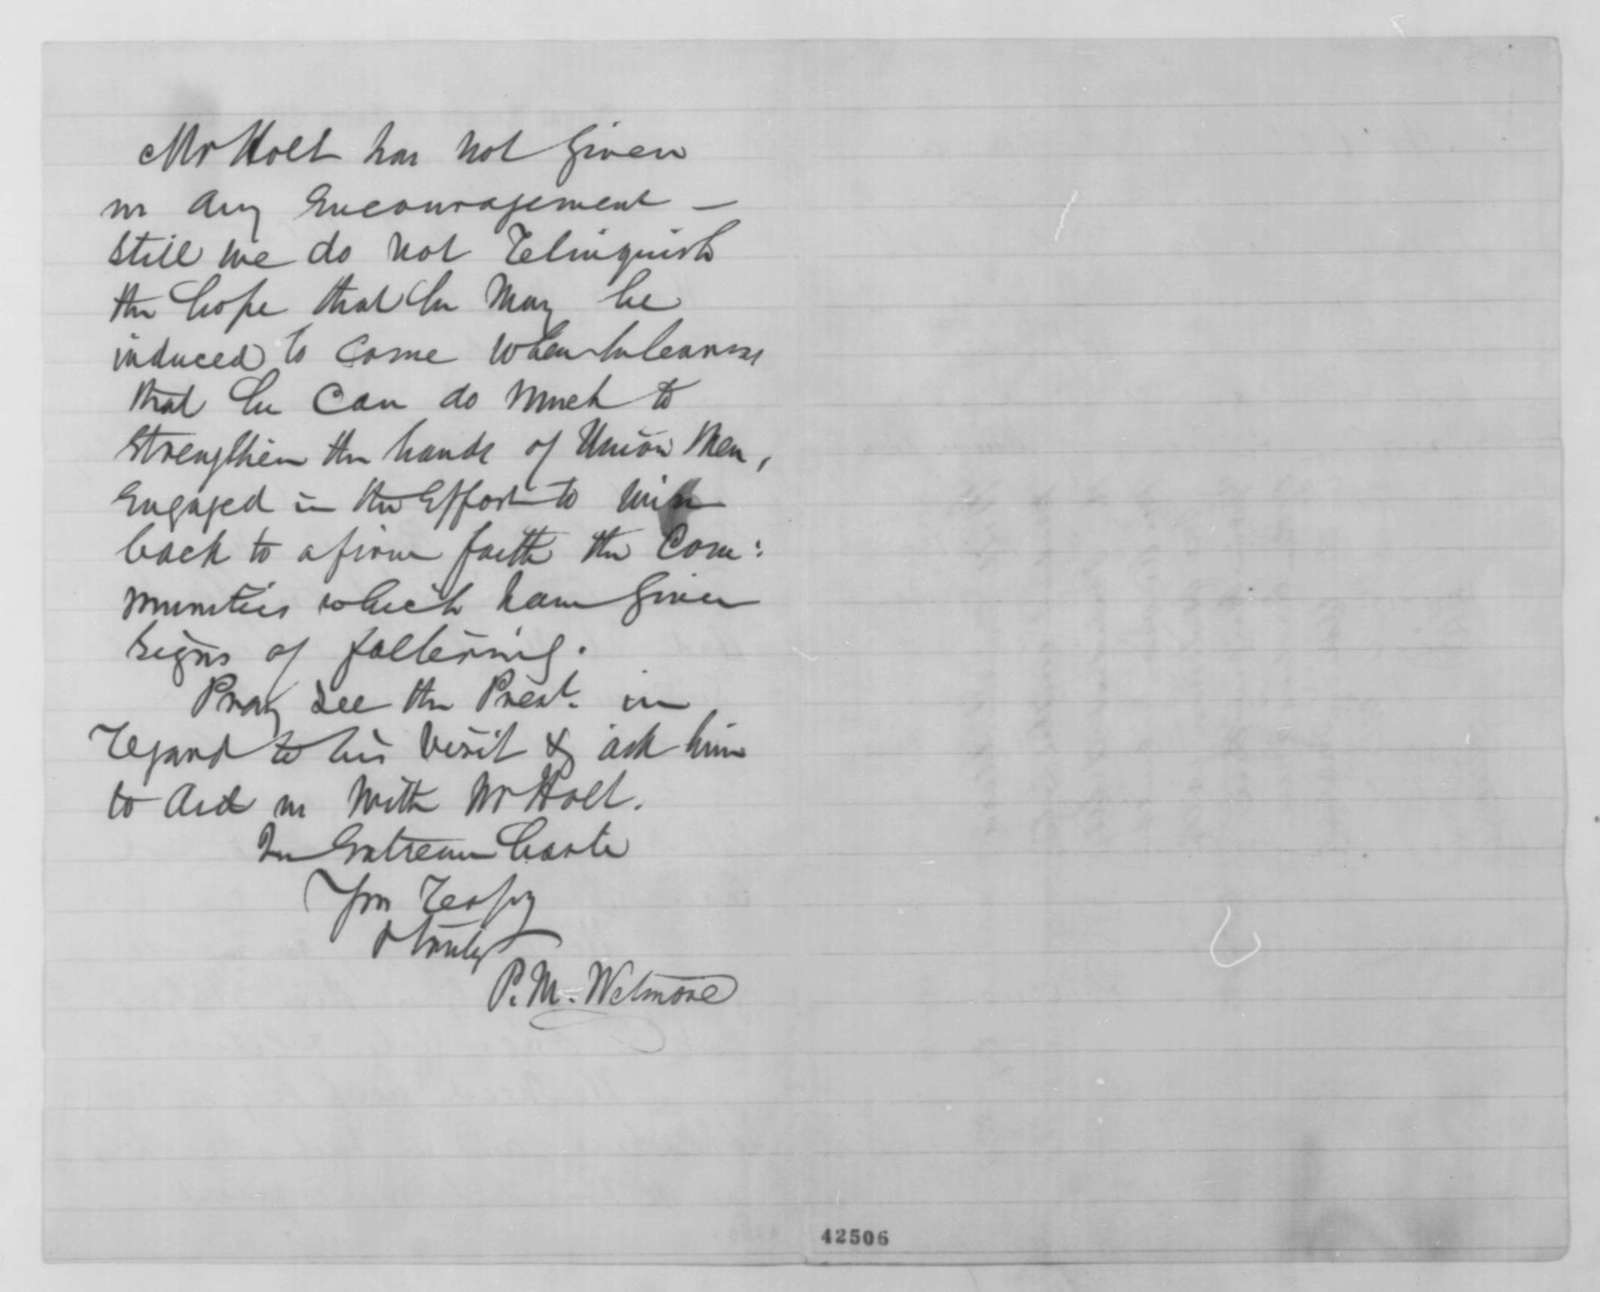 Prosper M. Wetmore to James M. Edmunds, Friday, March 20, 1863  (Is Lincoln planning a trip to New York?; endorsed by Edmunds)